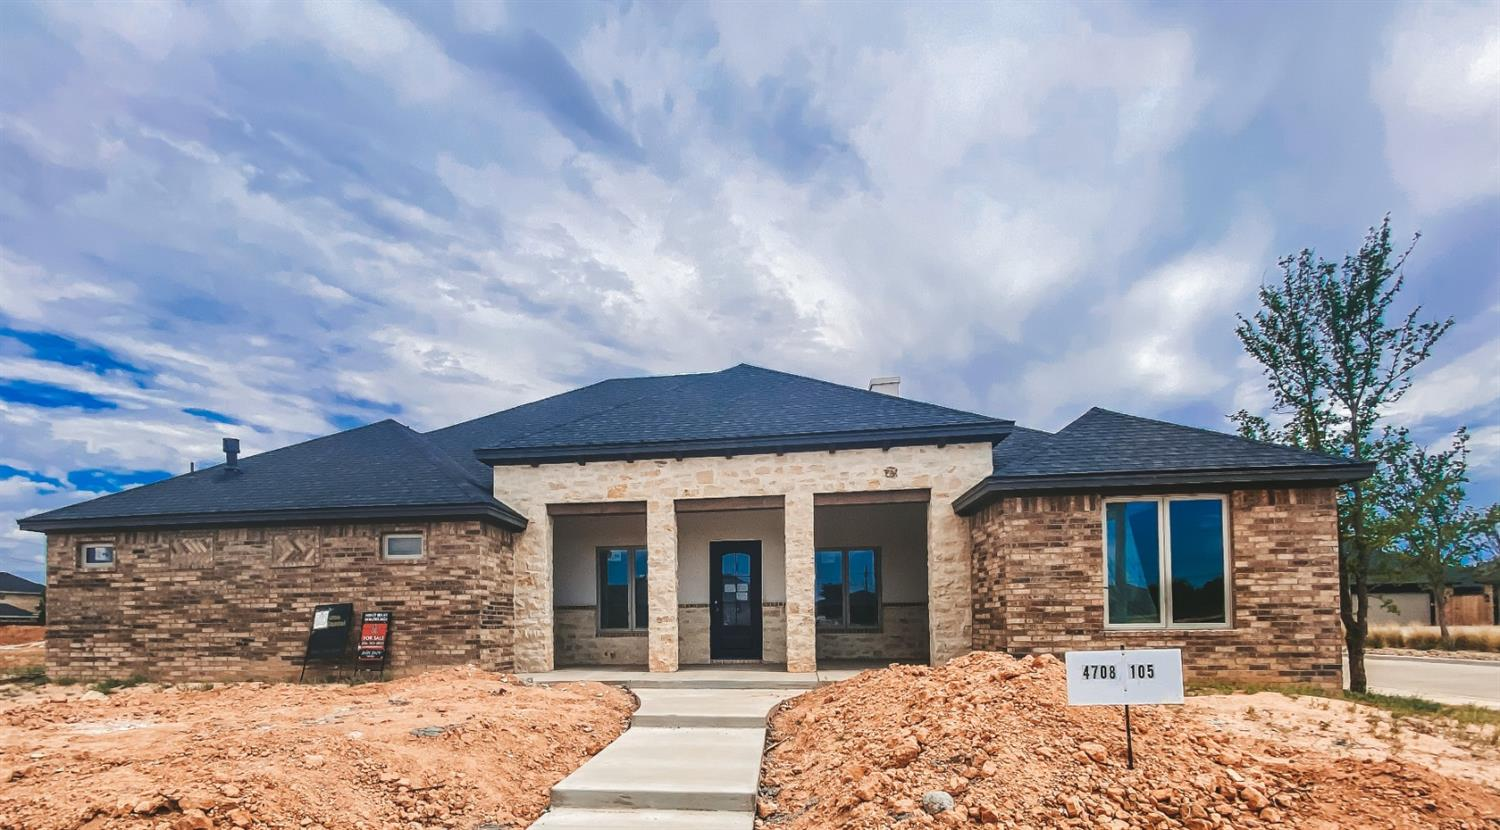 Lakeridge South Custom Aaron Daniel Home with 4 bedrooms, 3 baths, outstanding kitchen and dining and space galore!  Come see this beauty today!